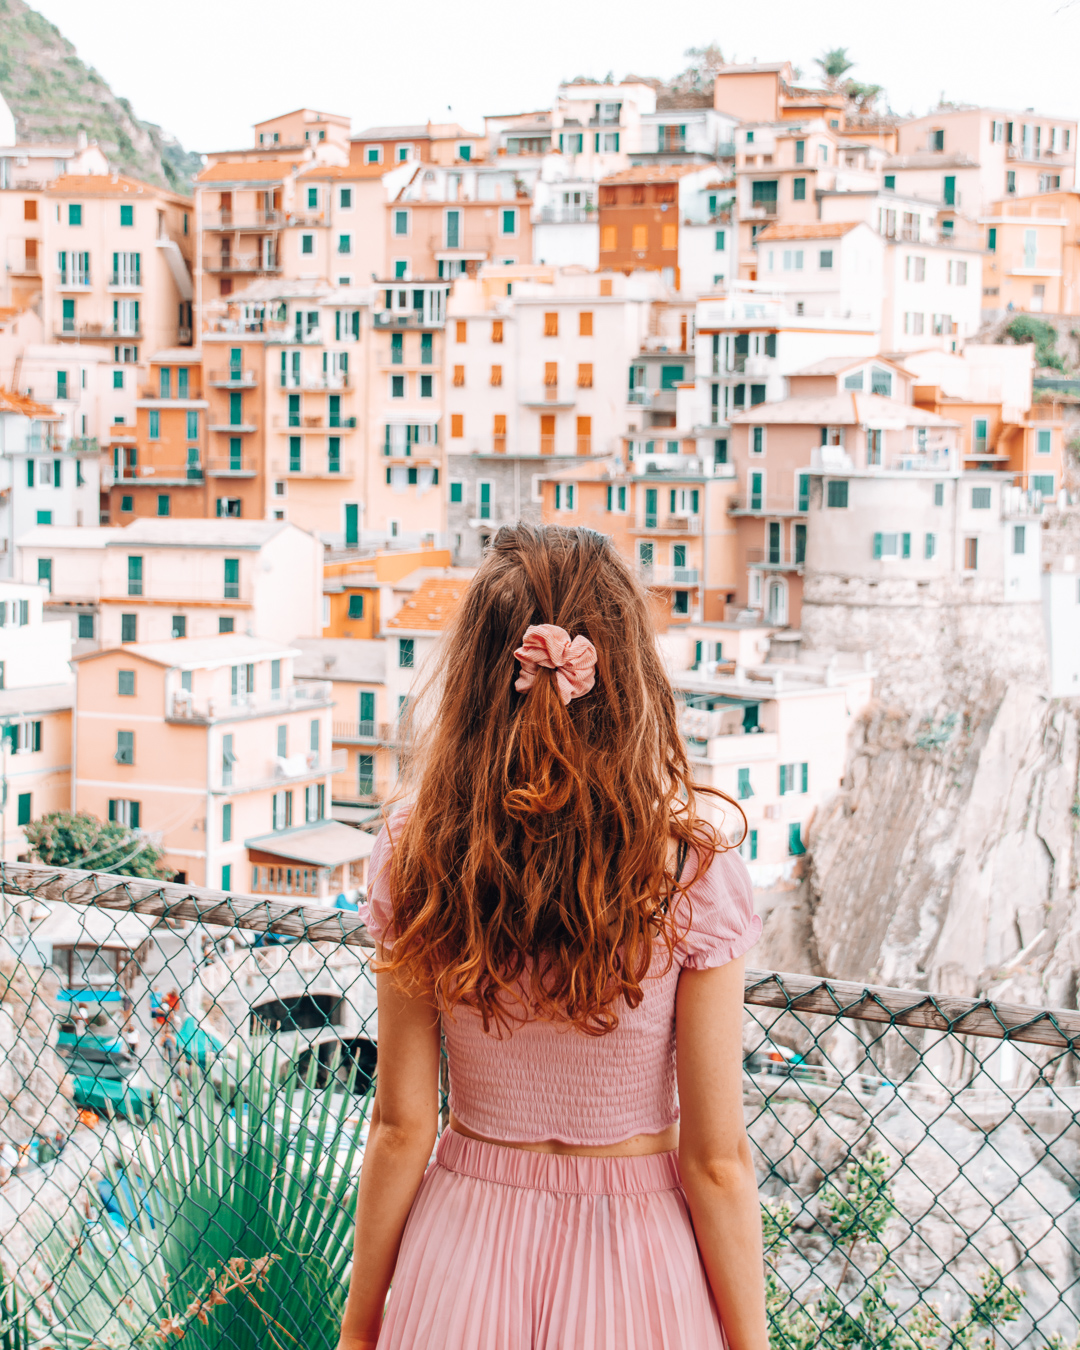 Colourful houses and a girl in Manarola